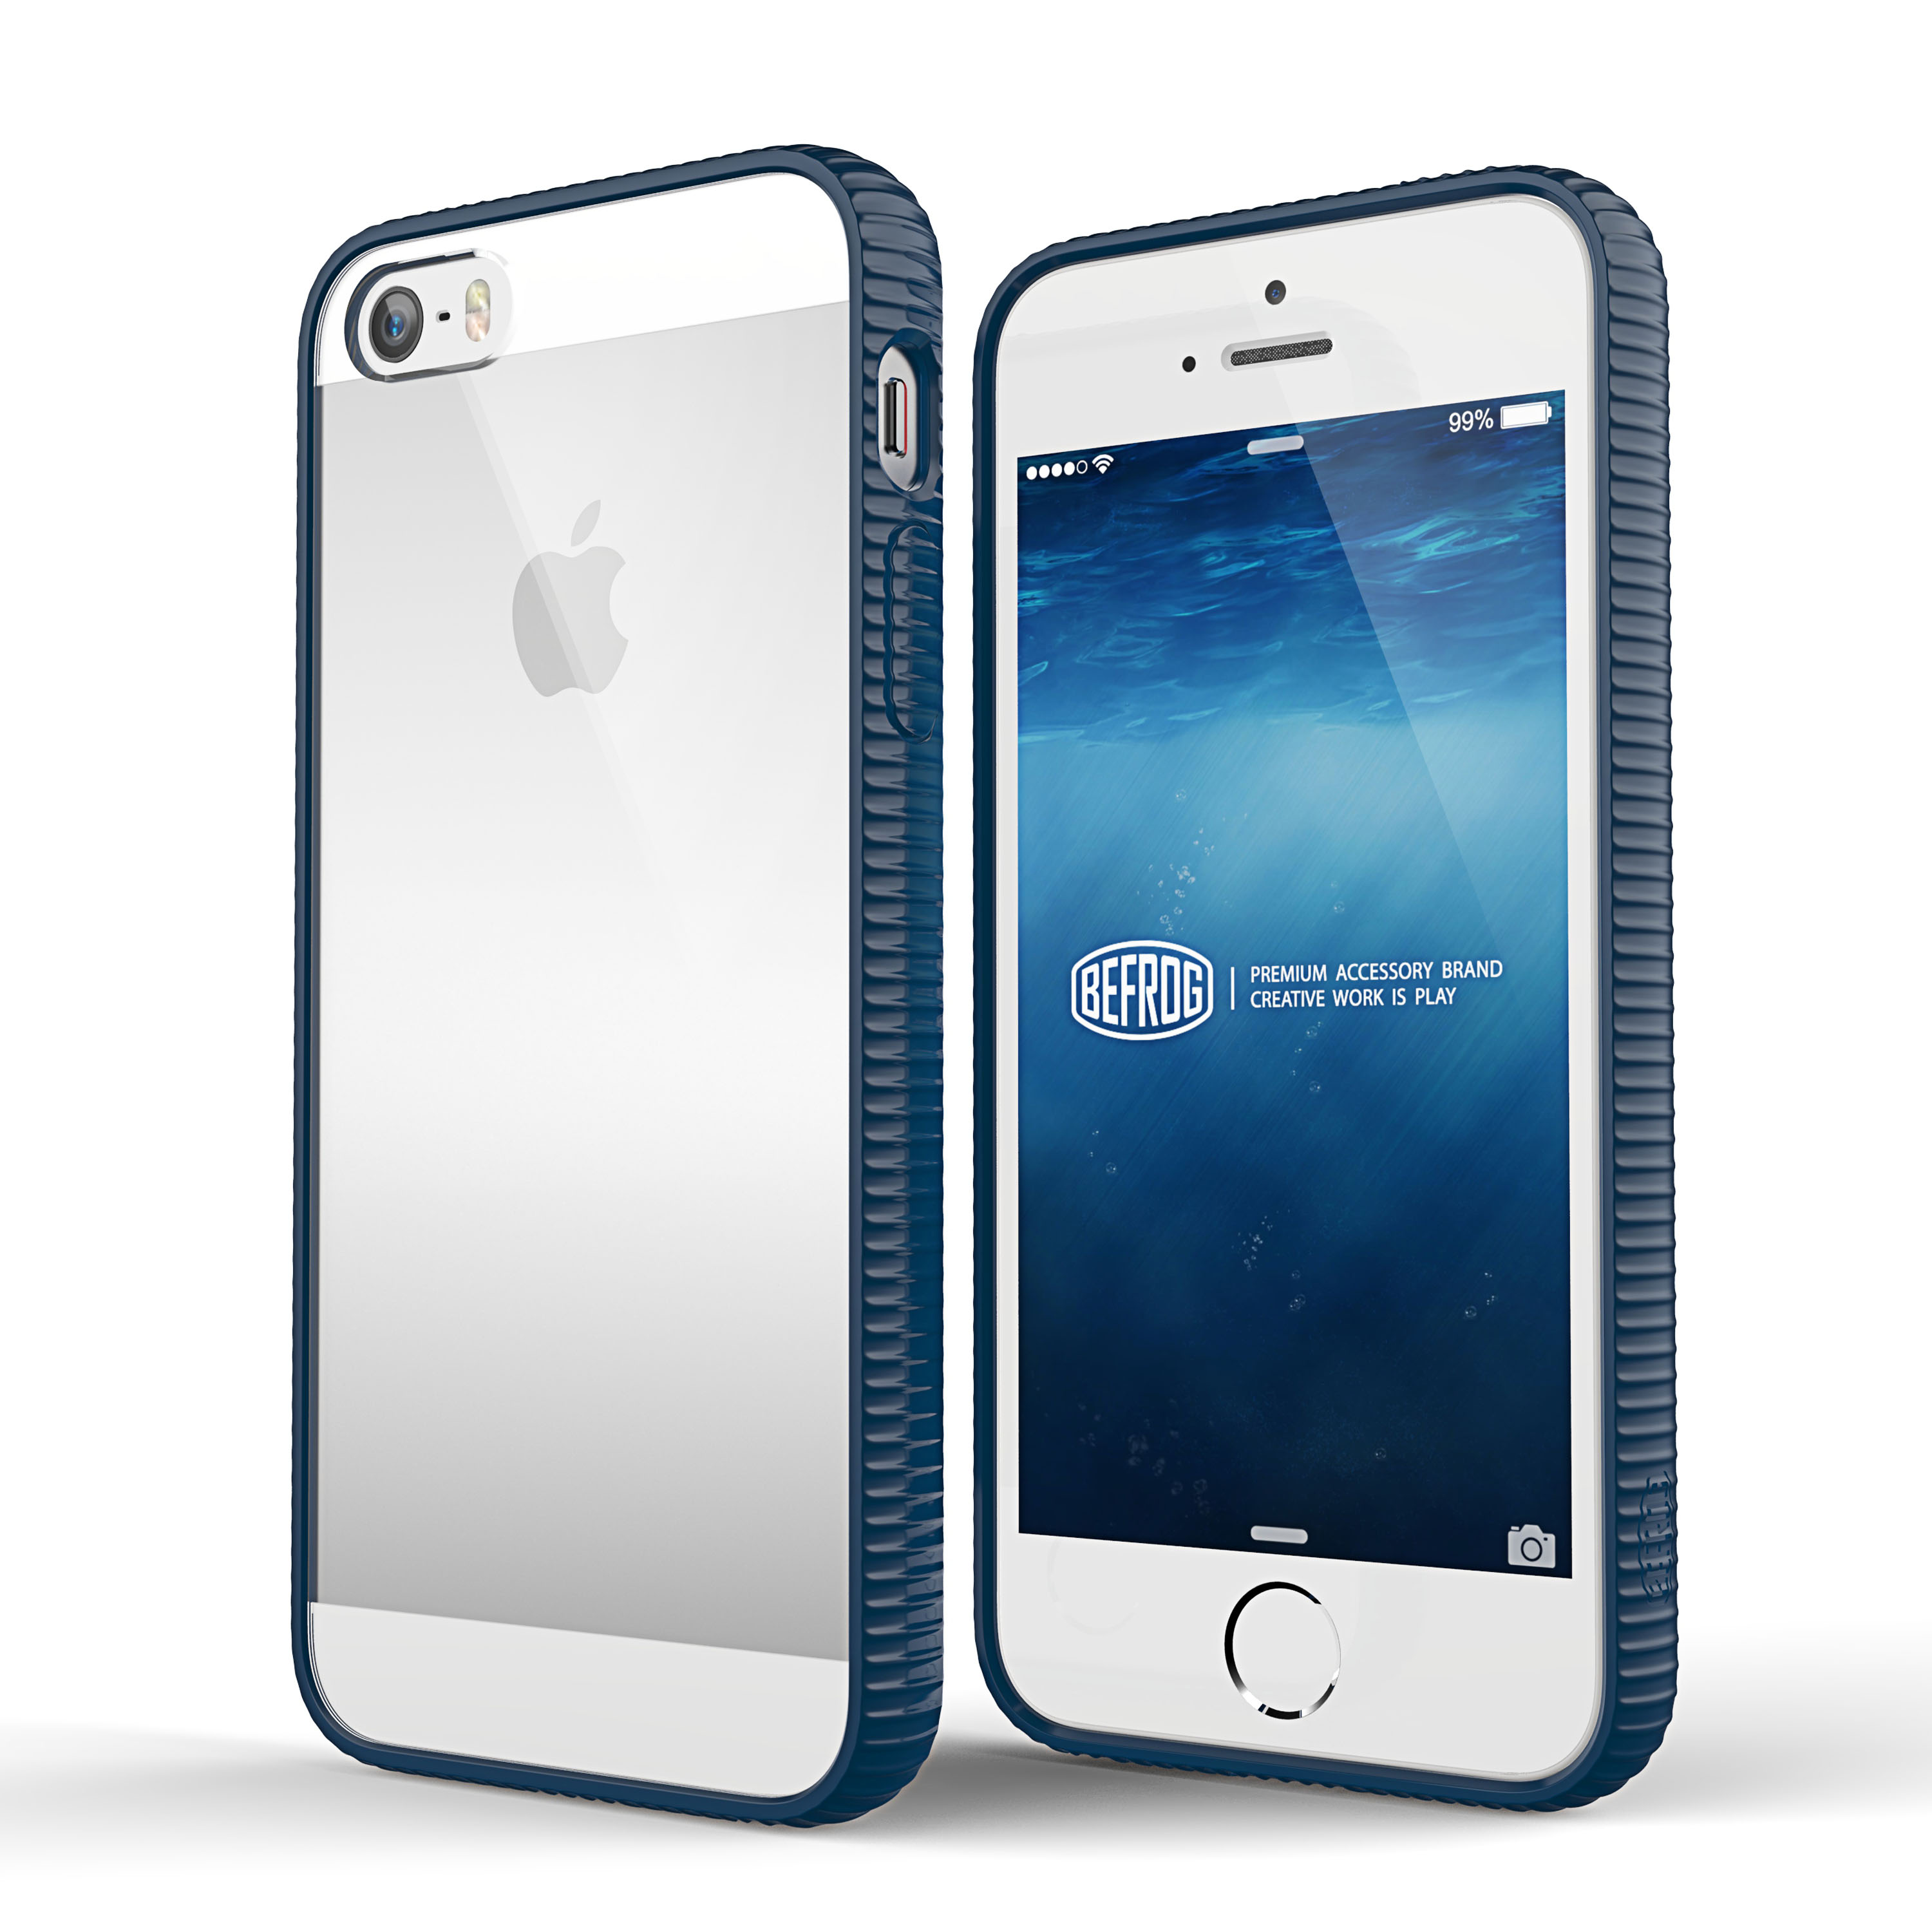 pretty nice 15de0 c77a0 Made for Apple iPhone SE/5/5S Case BEFROG [Dark Blue] Crystal Hard Back  Slim Flexible Grip Clear Back Panel + TPU Bumper Cover Case by Befrog